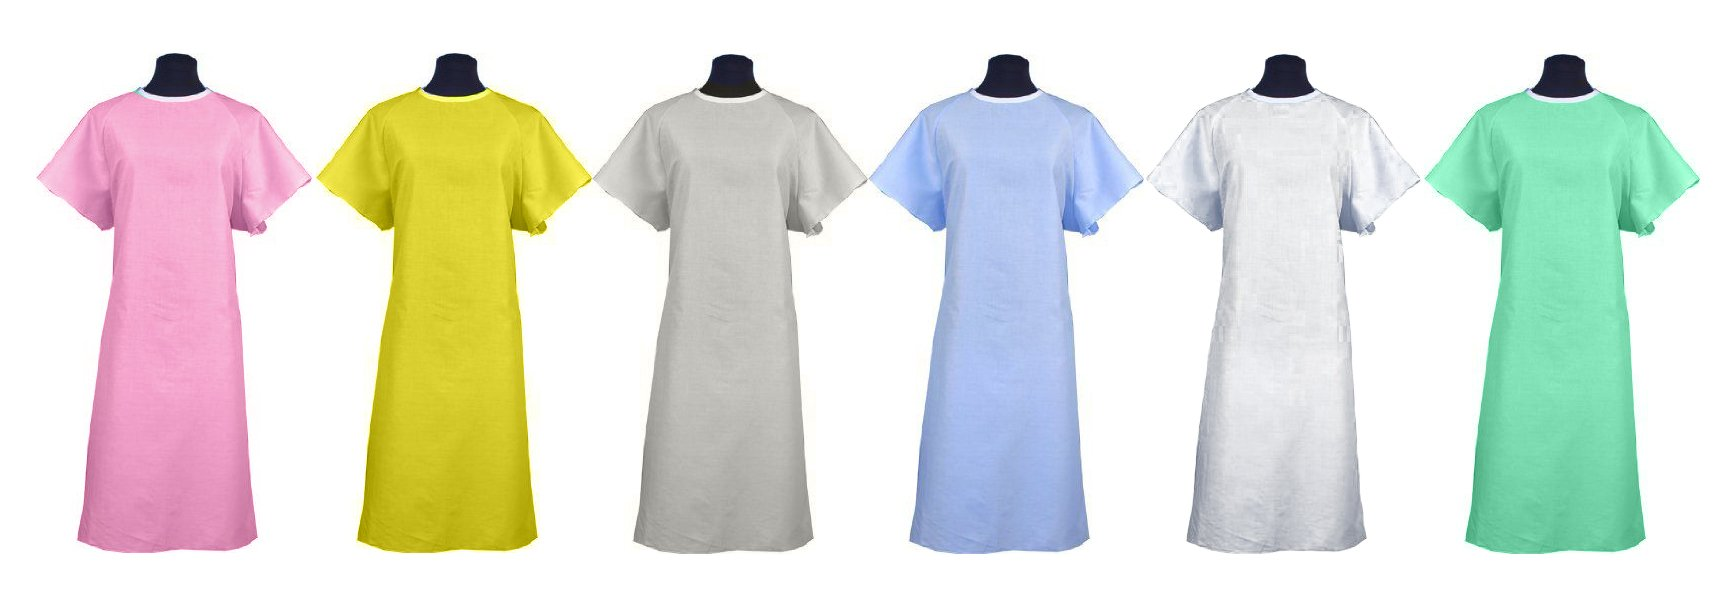 Classic Patient Medical Hospital Gown / Johnny Hospital Gowns 2pack - Many Colors to Choose From! Made in the USA (Mint)